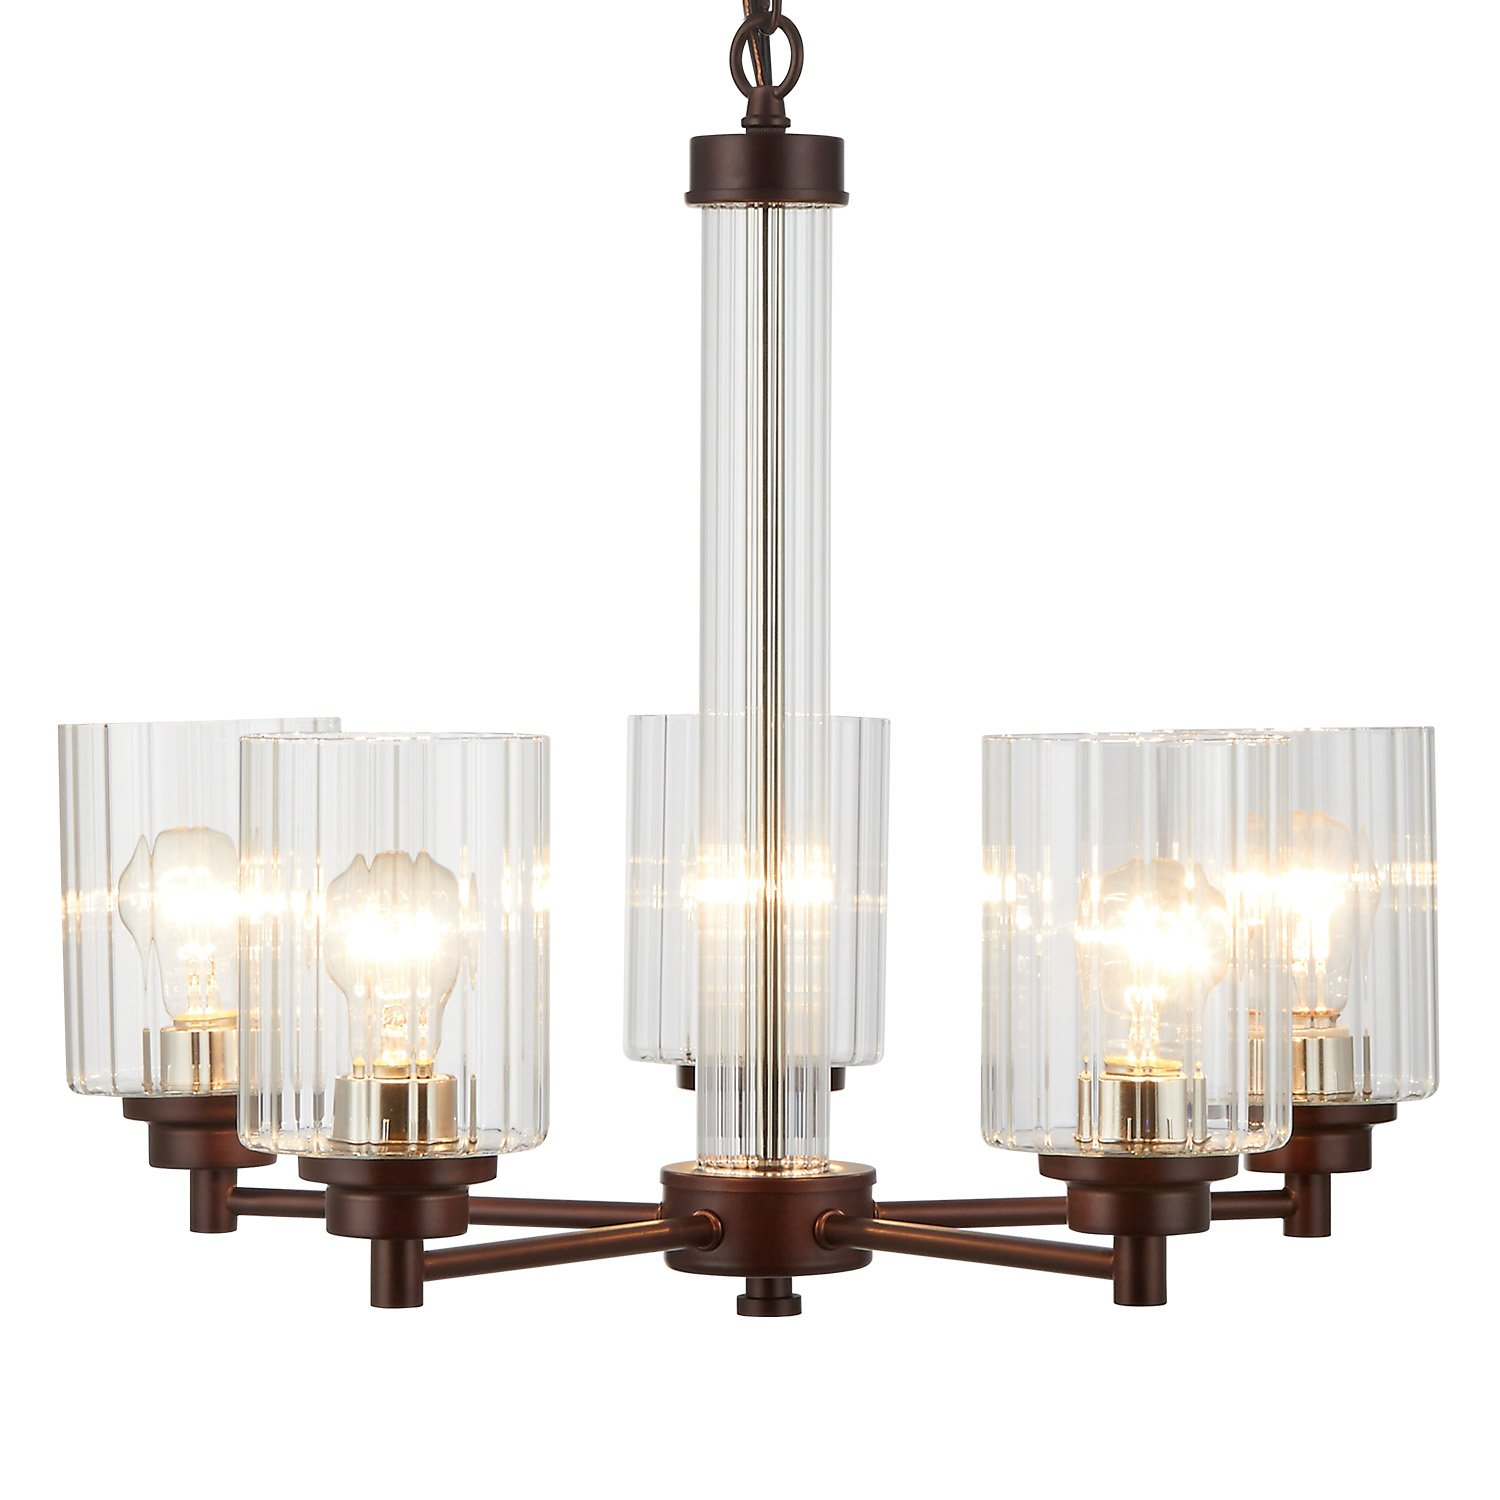 Doraimi 3/5 Light Chandelier Lighting Traditional Ceiling Light Fixture with Satin Etched Cased Opal Glass Shade for Foyer, Dining Room, Living Room, Family Room (Brown, 5 Light)